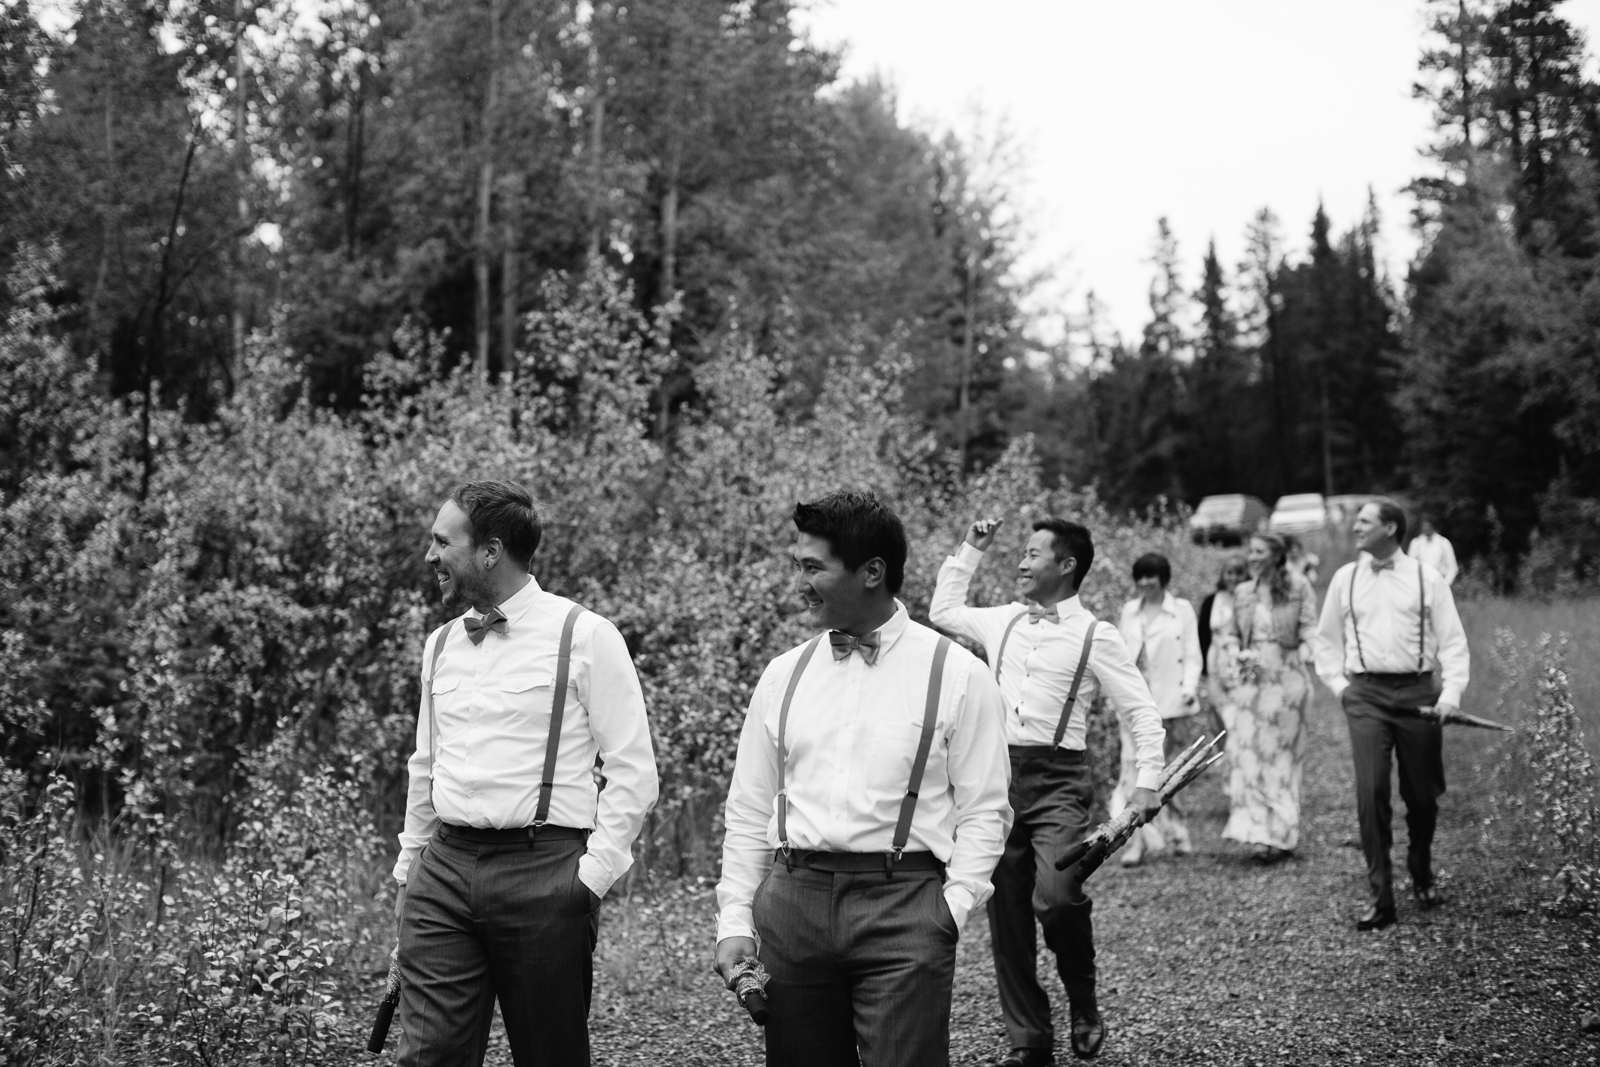 46Willow_and_wolf_Calgary_Wedding Photography-46-58Andrew_Pavlidis_Photography_Silene_and_Sacha_Canmore_Wedding-4966